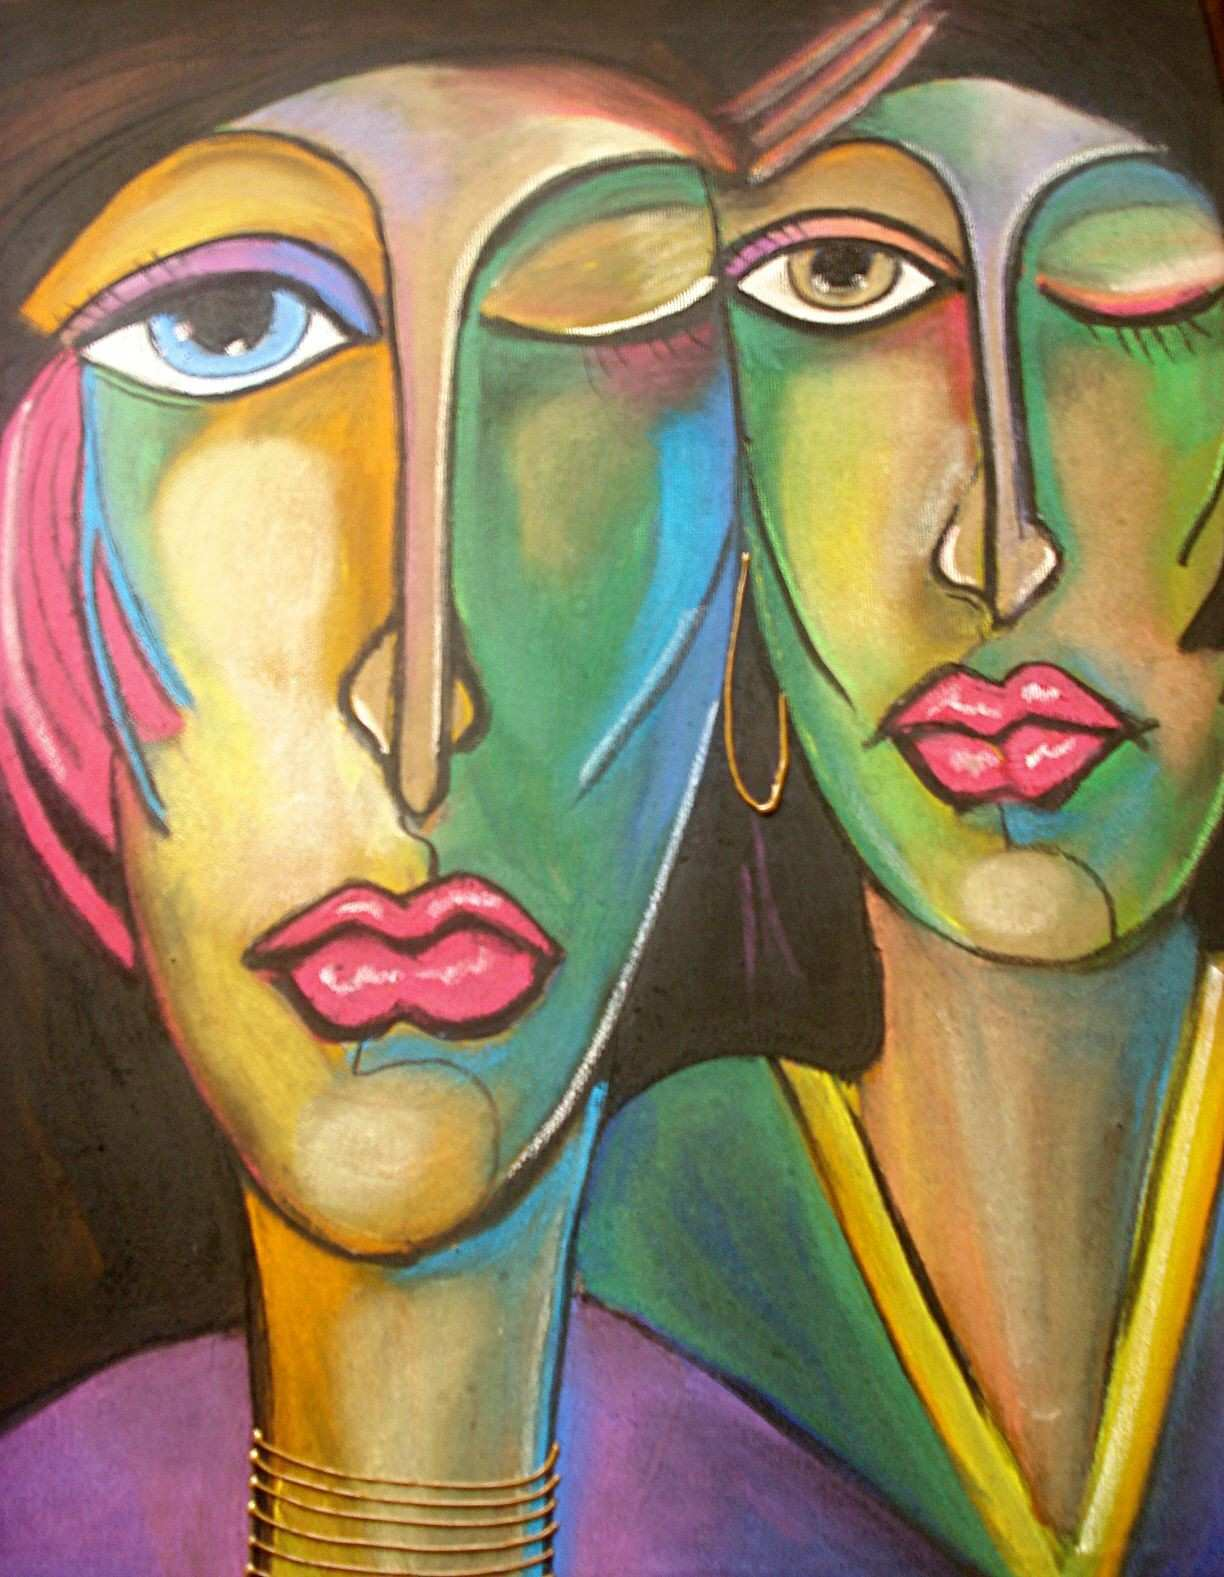 e of my chalk on canvas paintings SOLD cores